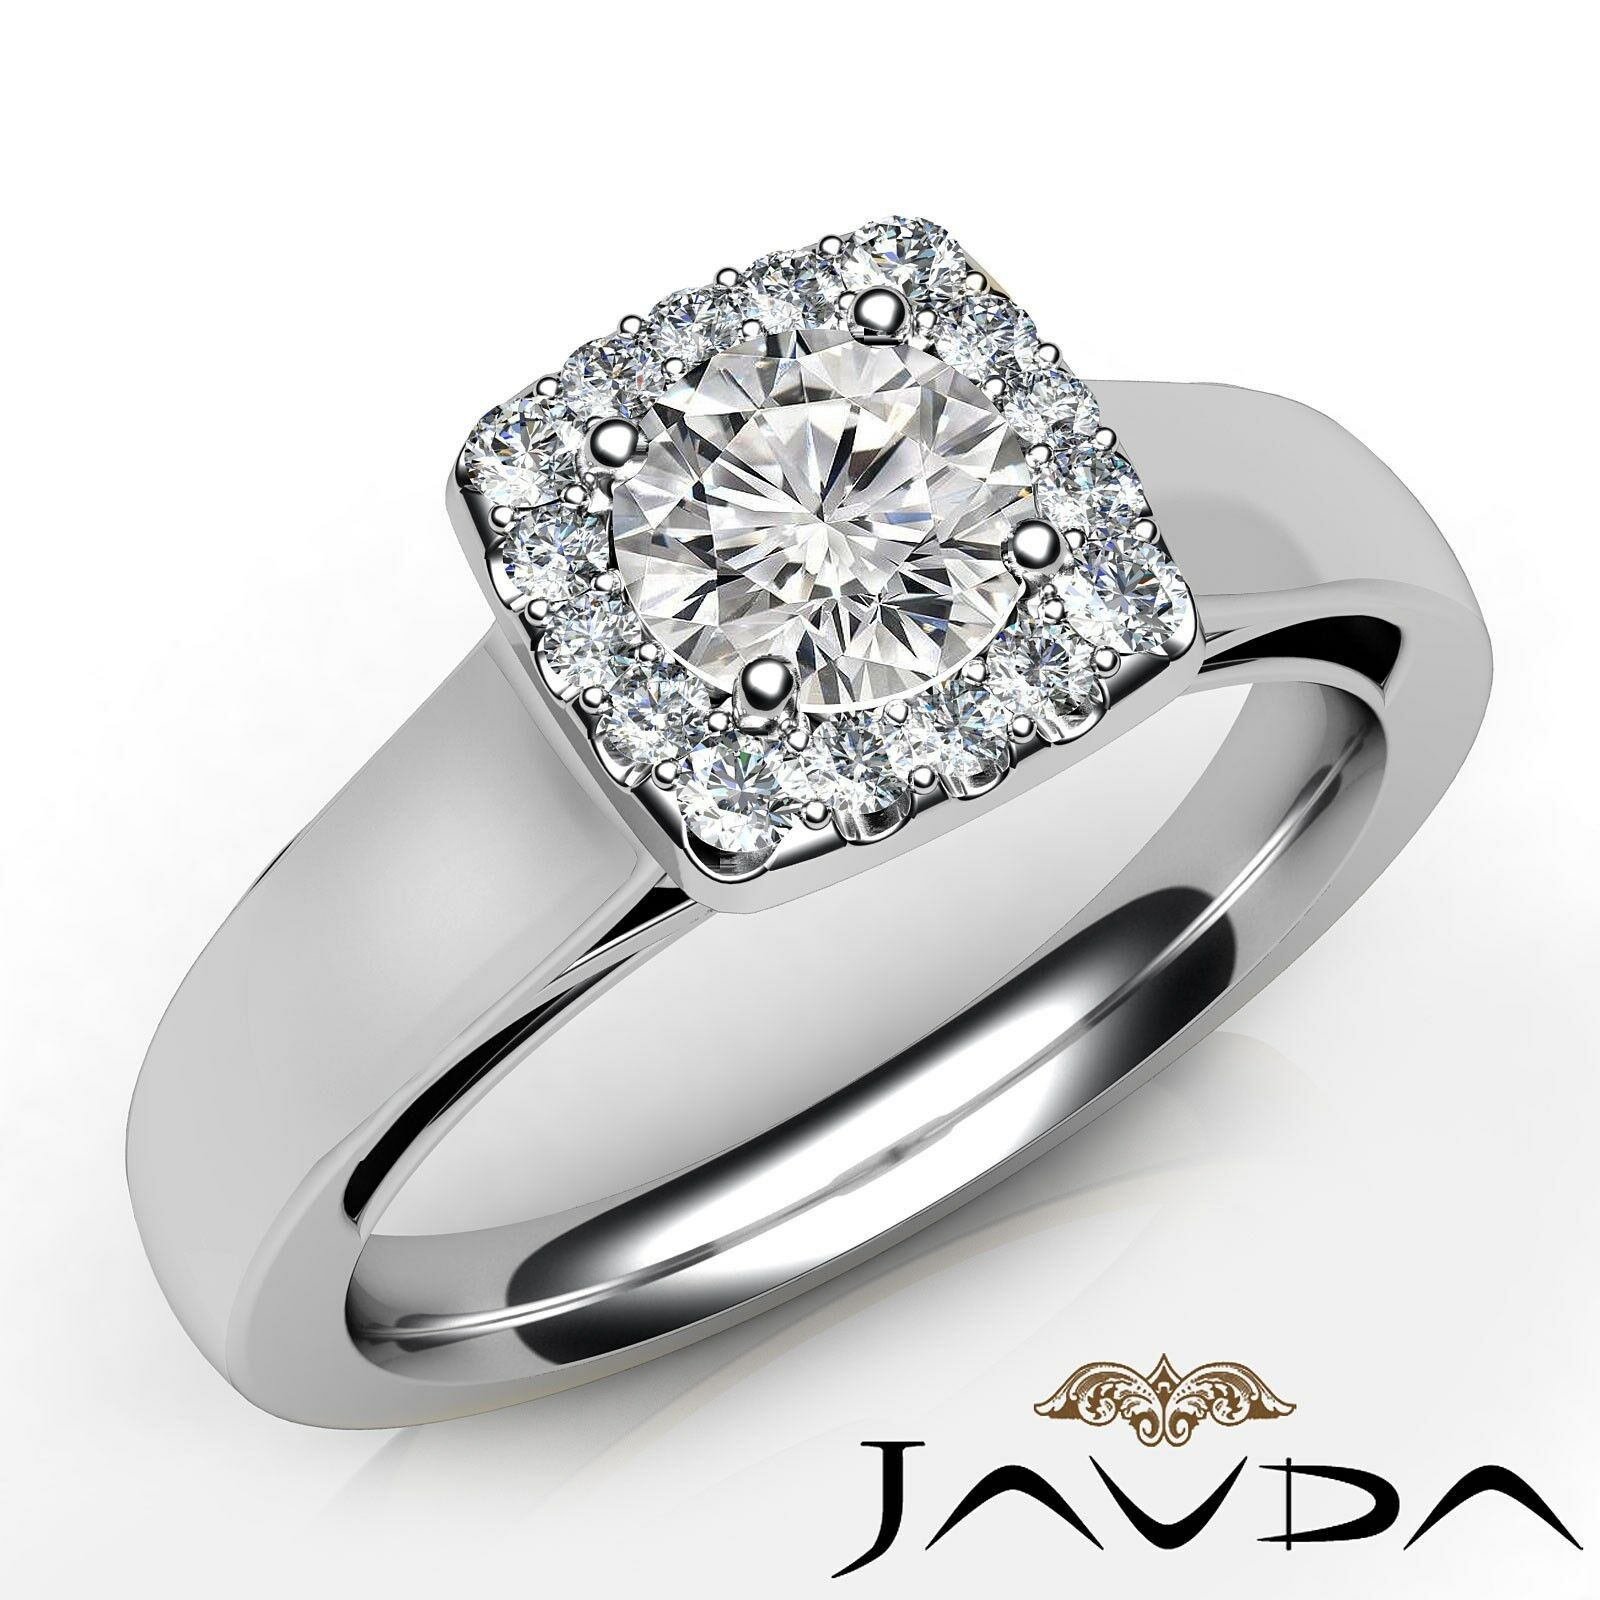 Cathedral Filigree Halo Round Cut Diamond Engagement Ring GIA F Color SI1 0.70Ct